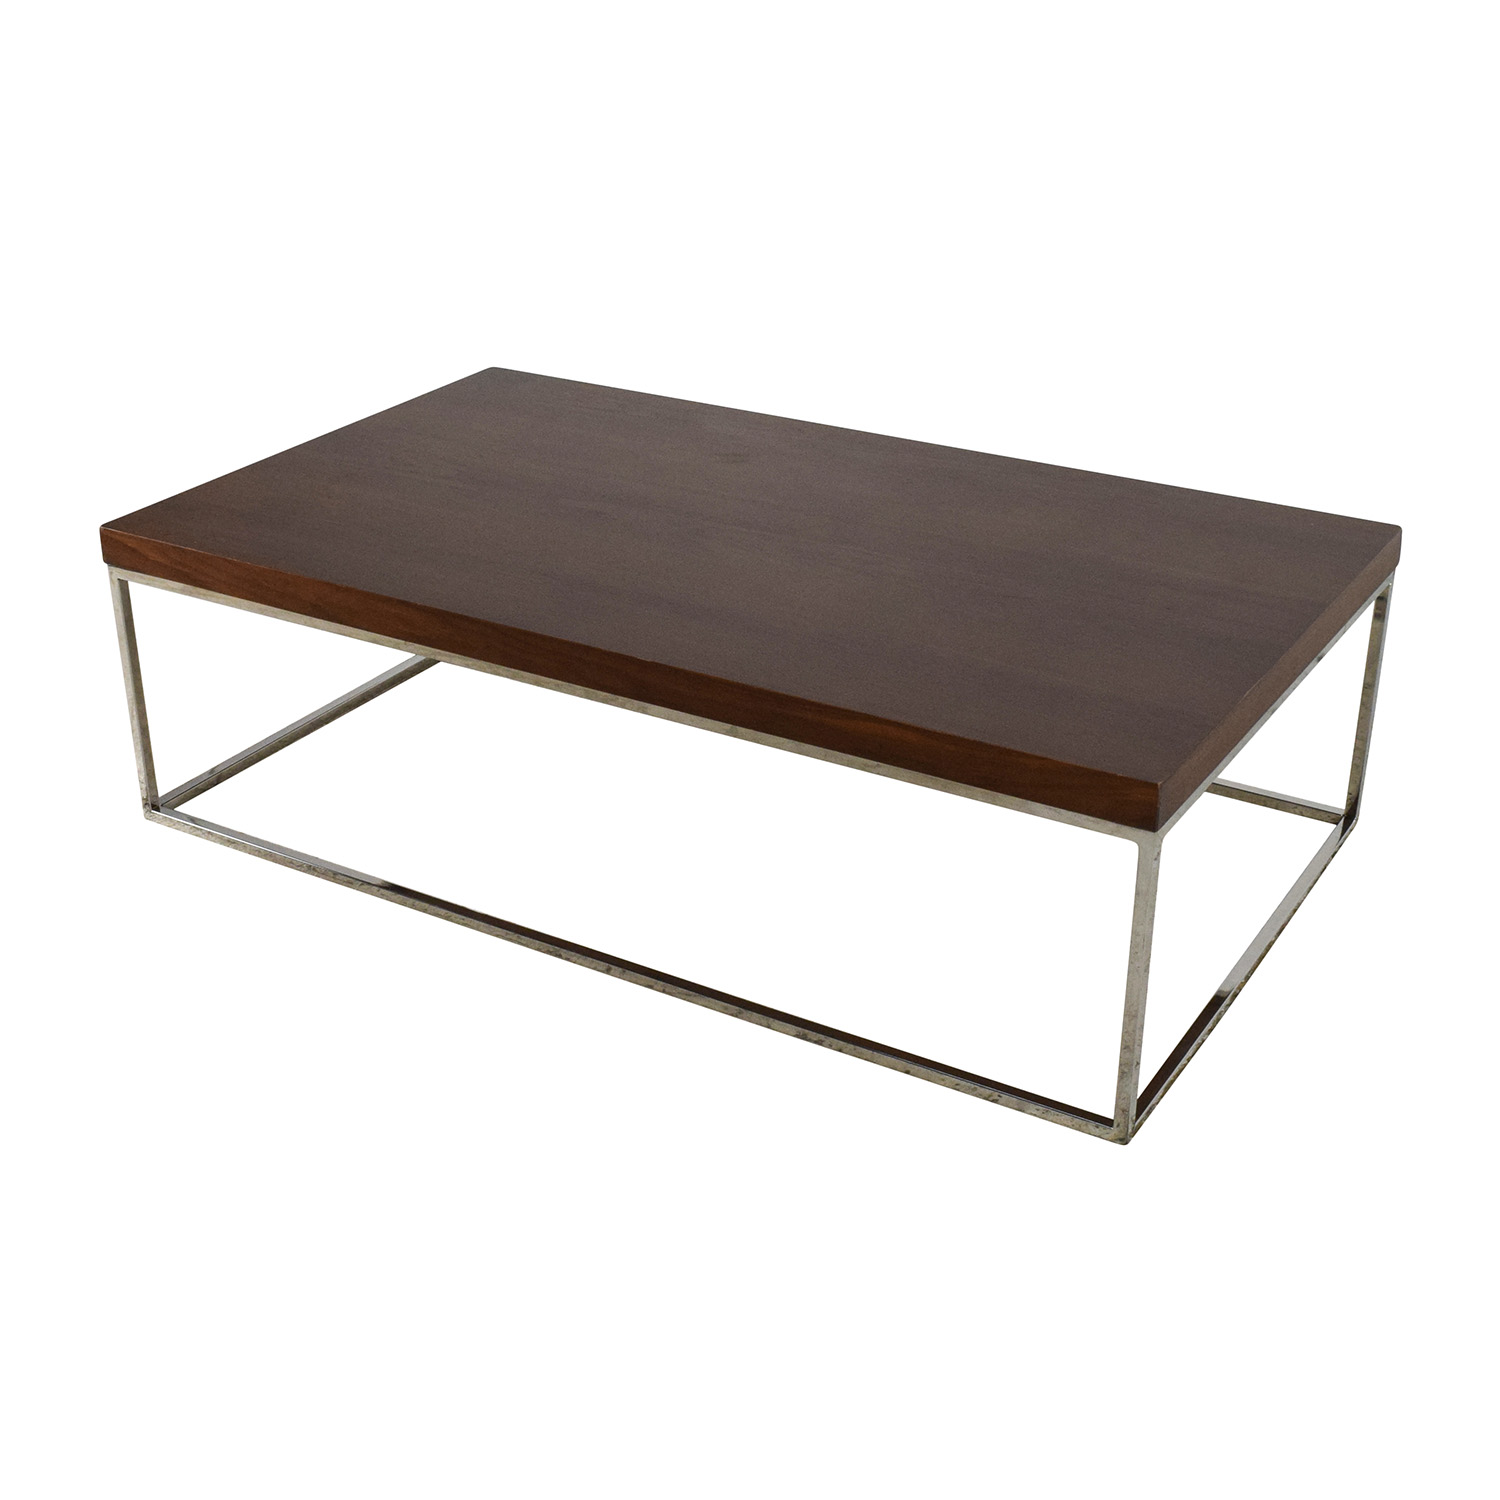 80 Off West Elm West Elm Copenhagen Coffee Table Tables